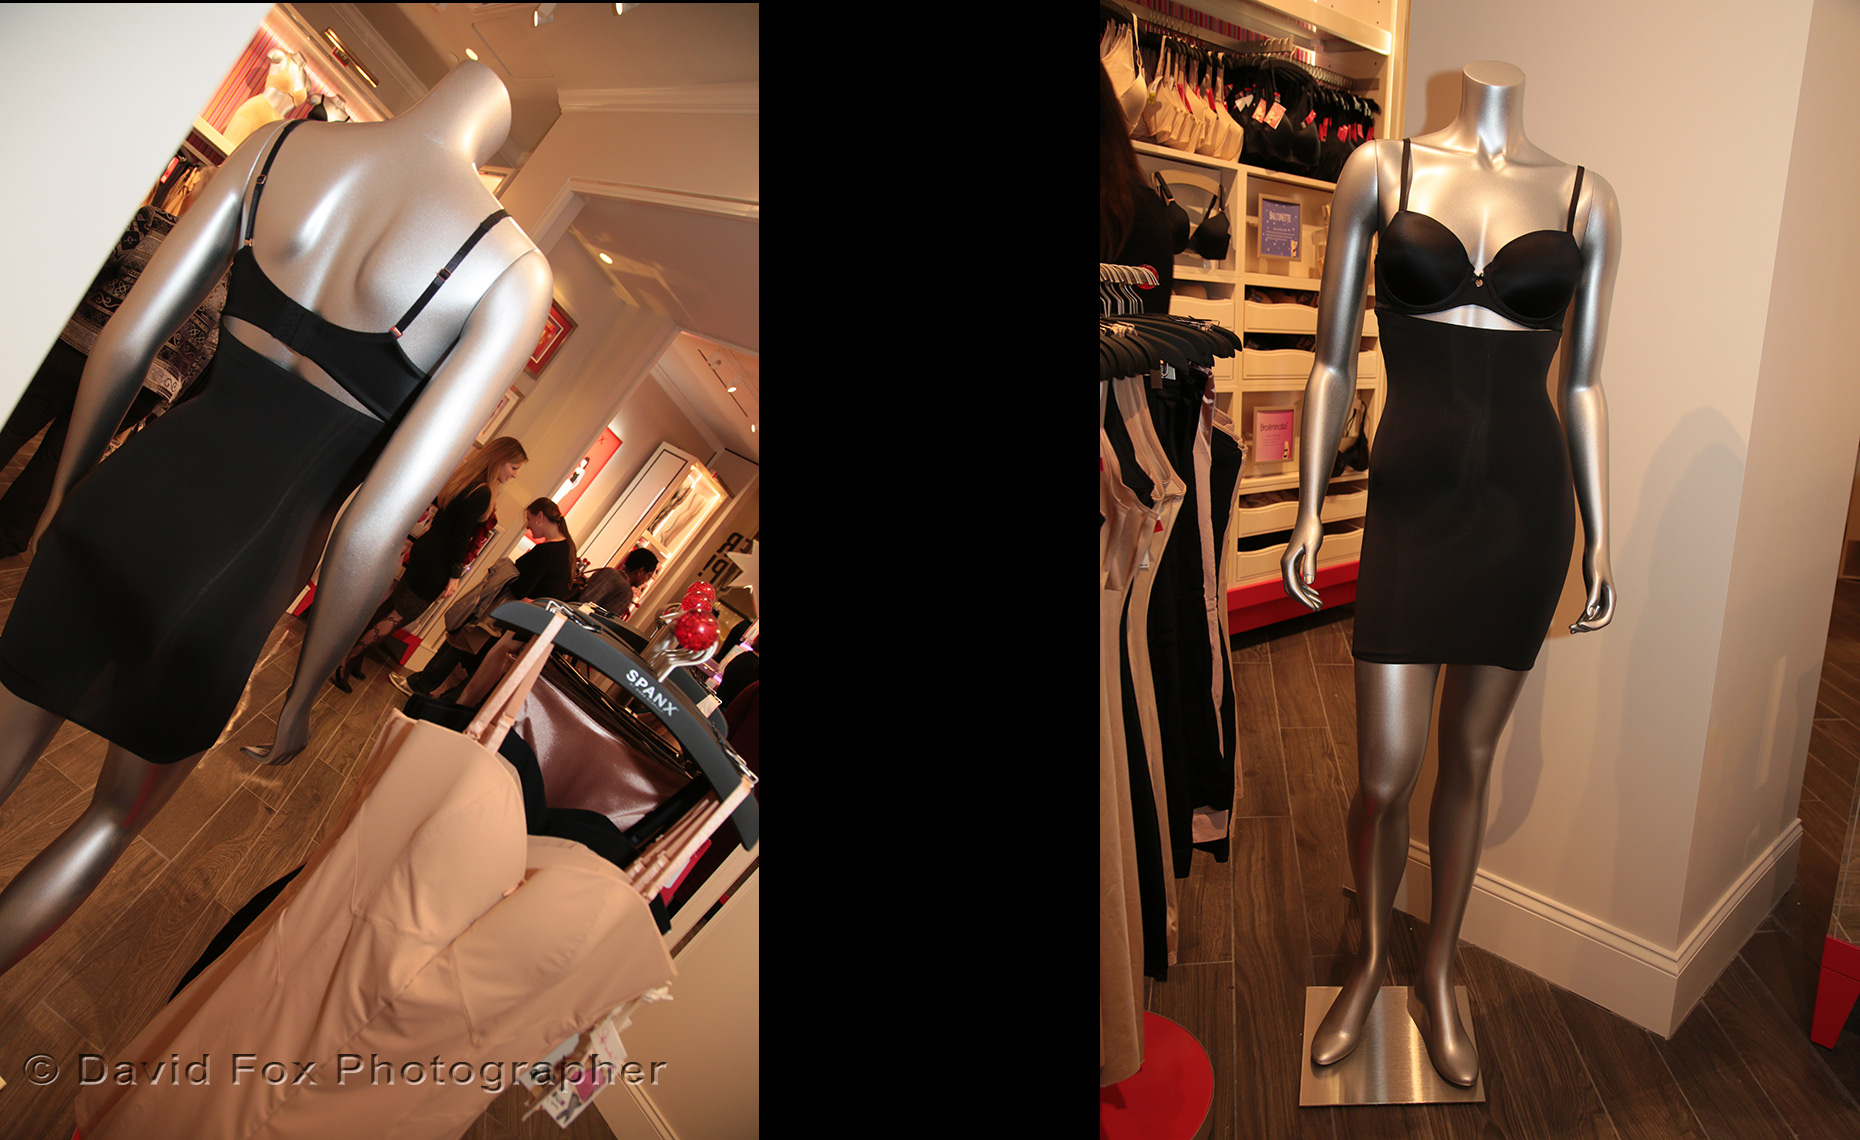 Mannequin Front and Rear Views at Spanx Natick Store